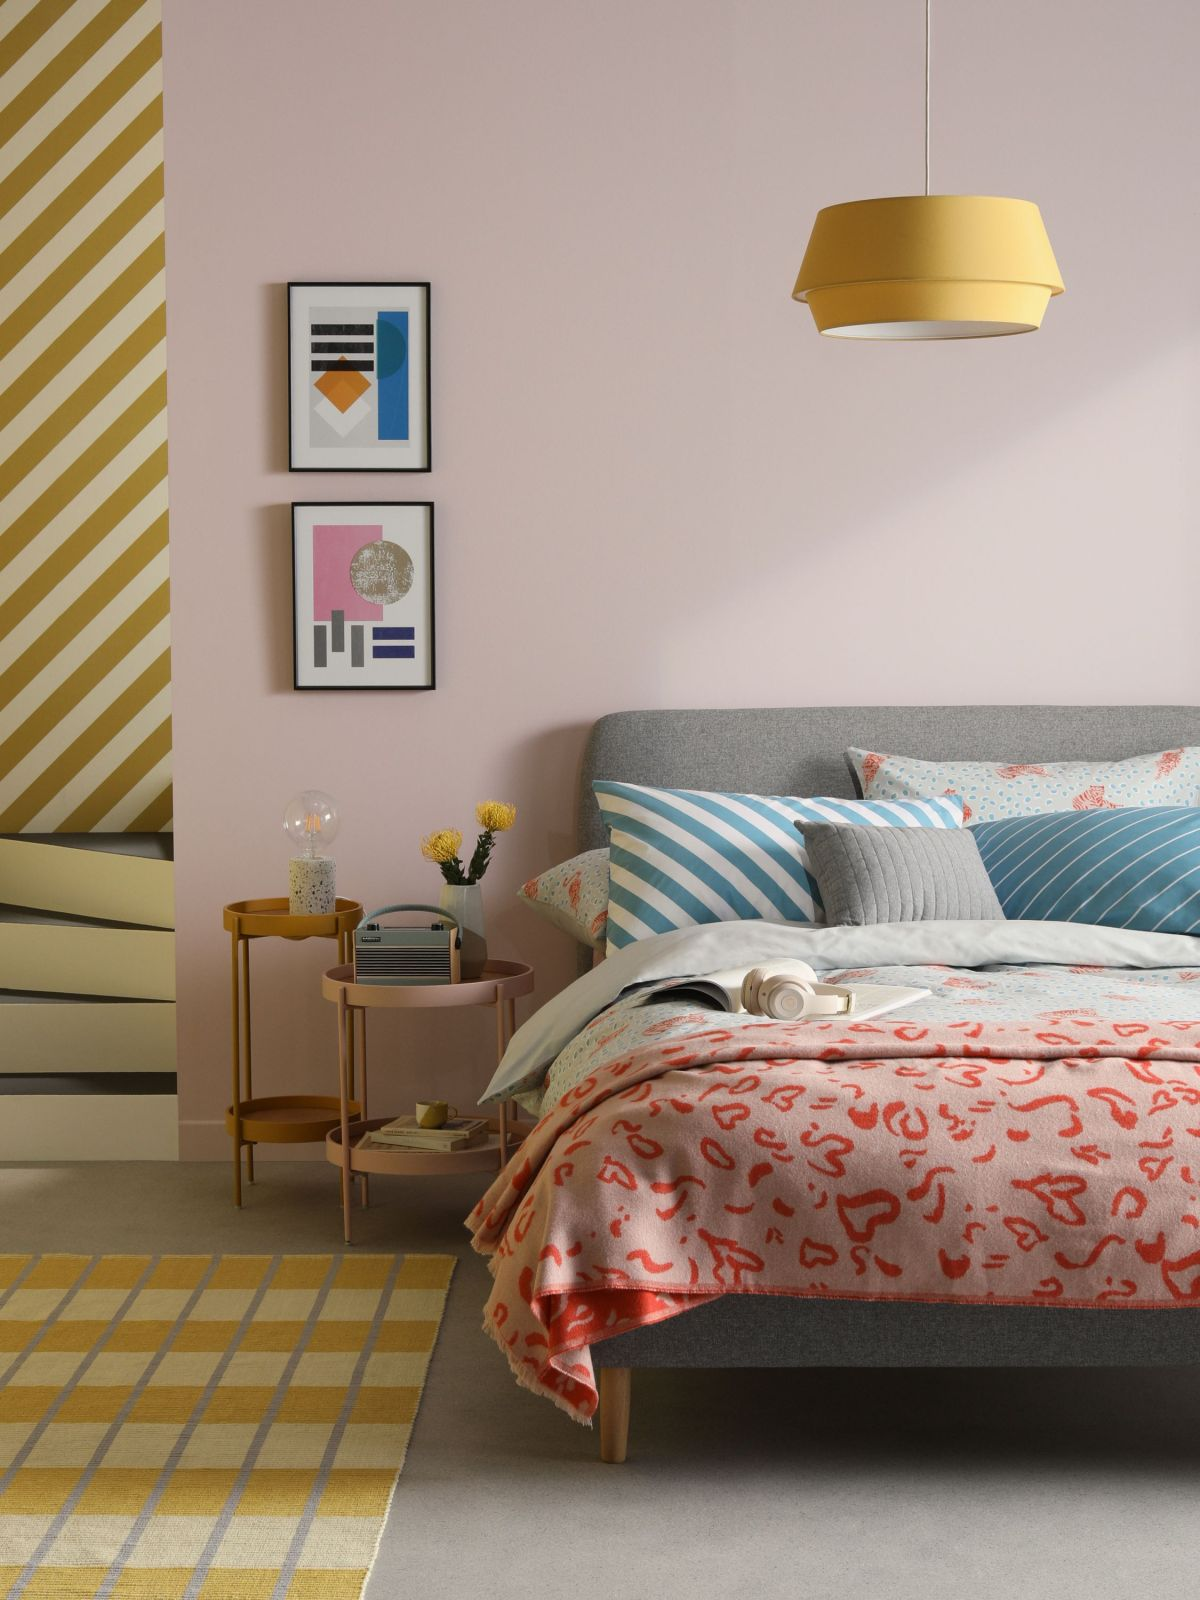 Small Bedroom Ideas: 14 Ways Create The Perfect Cosy Space